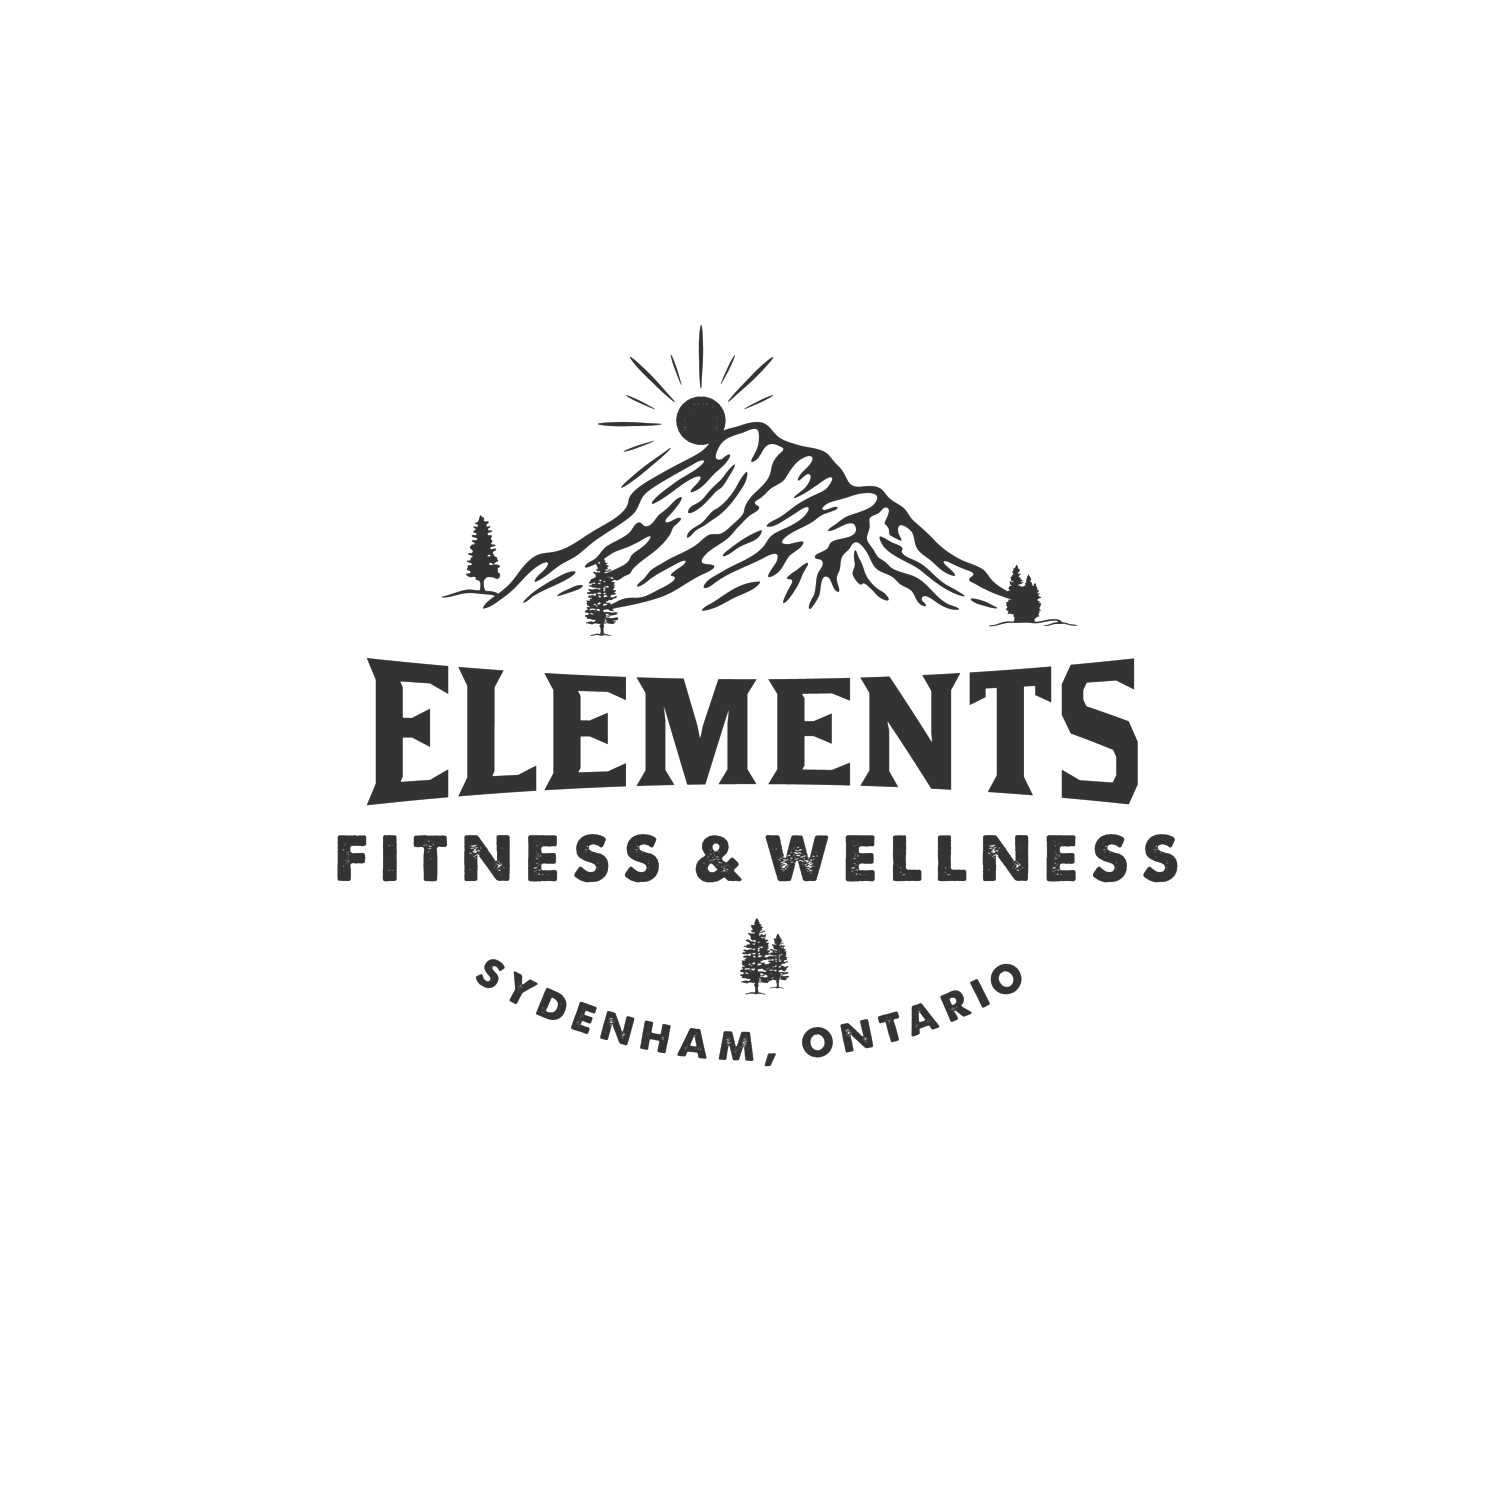 Elements Fitness and Wellness